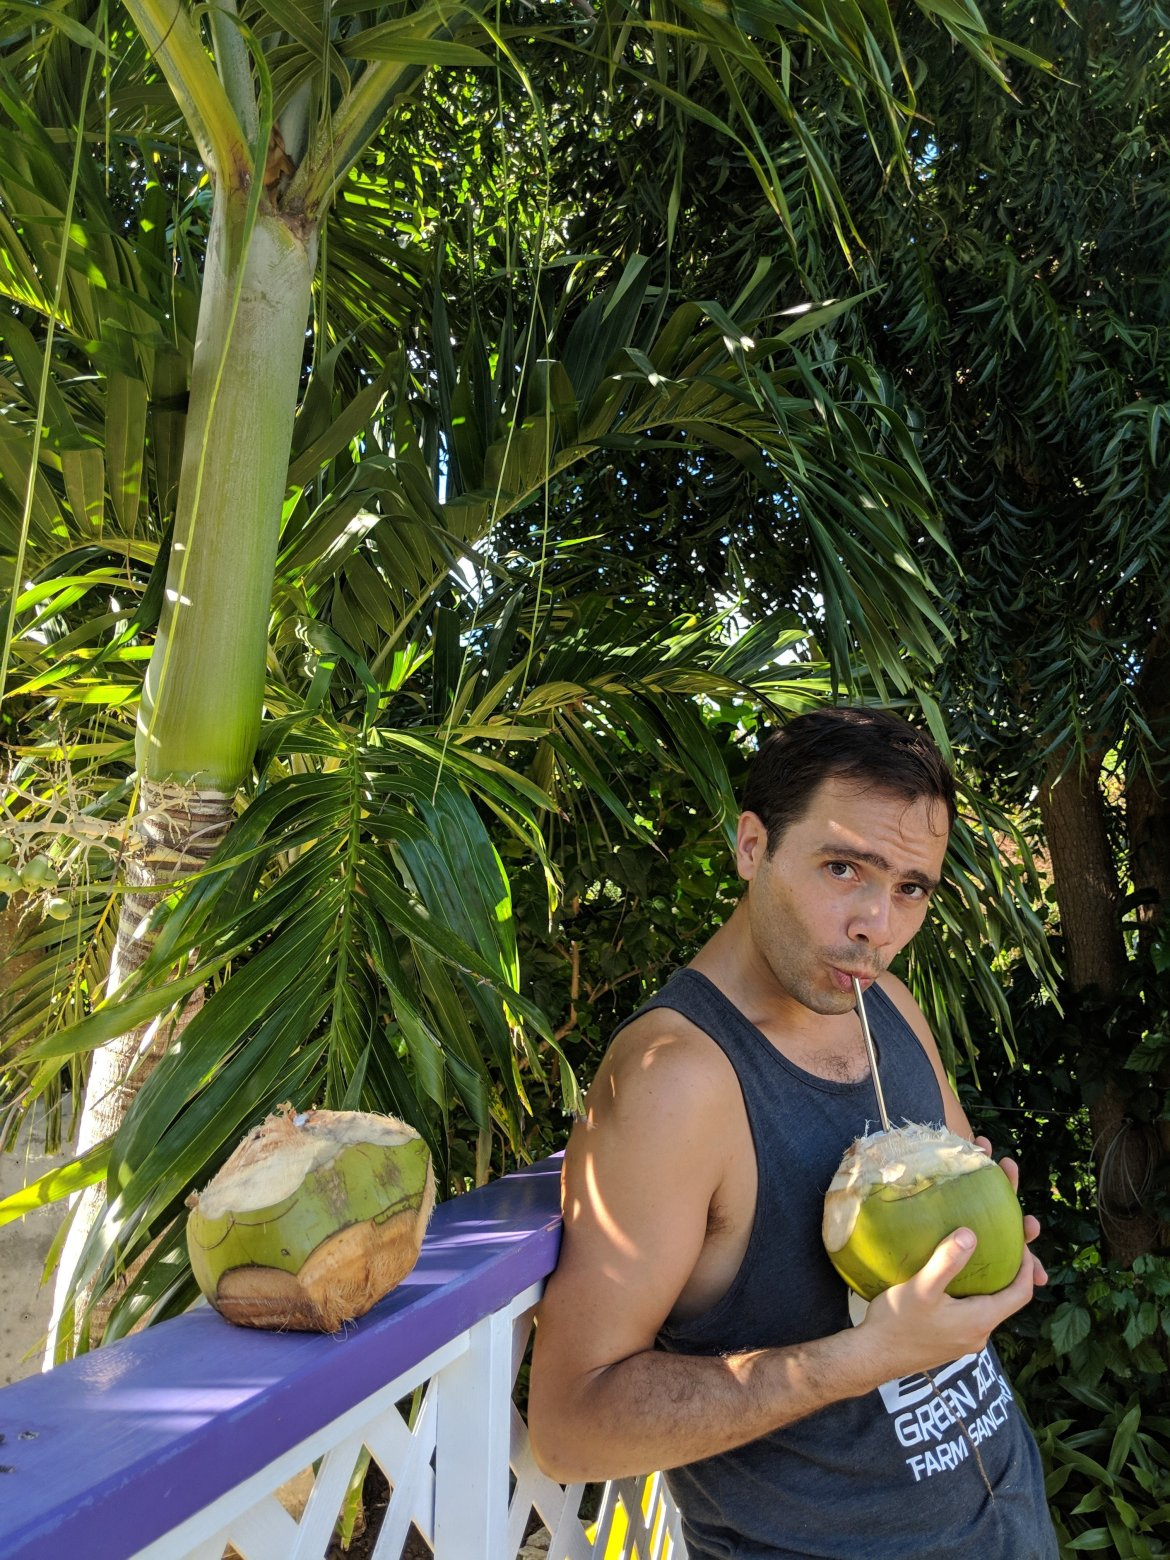 Man drinking coconut water from coconut